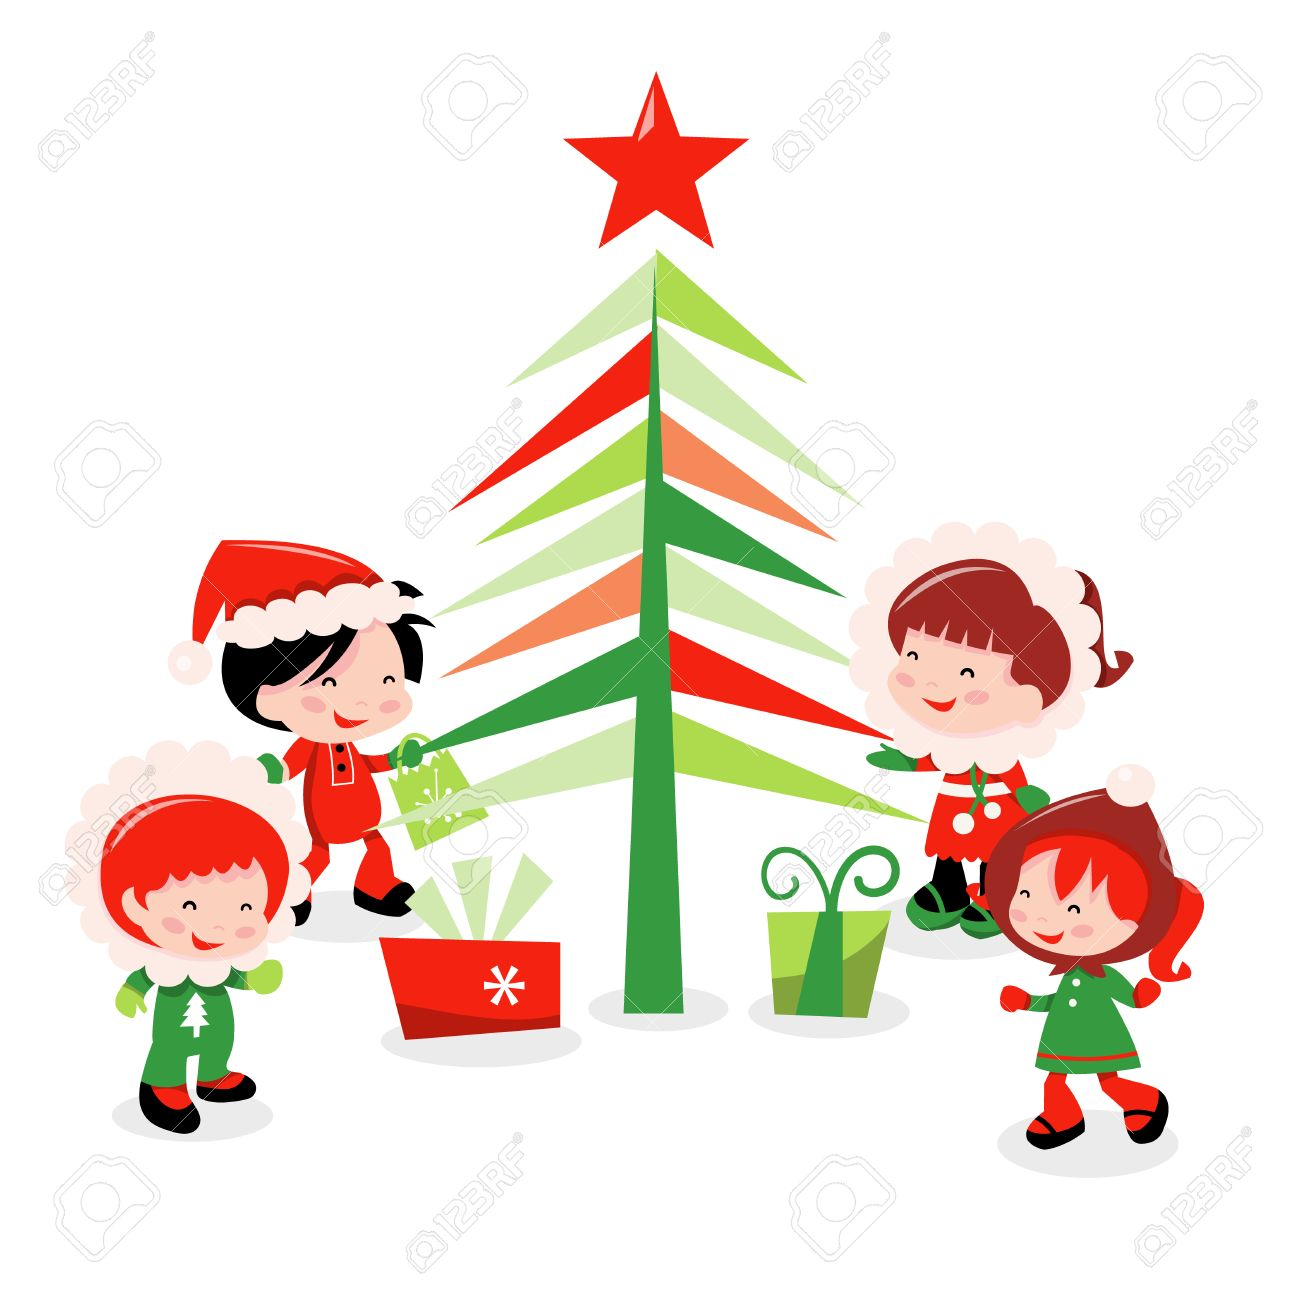 a cartoon vector illustration of a bunch of cute kids in winter